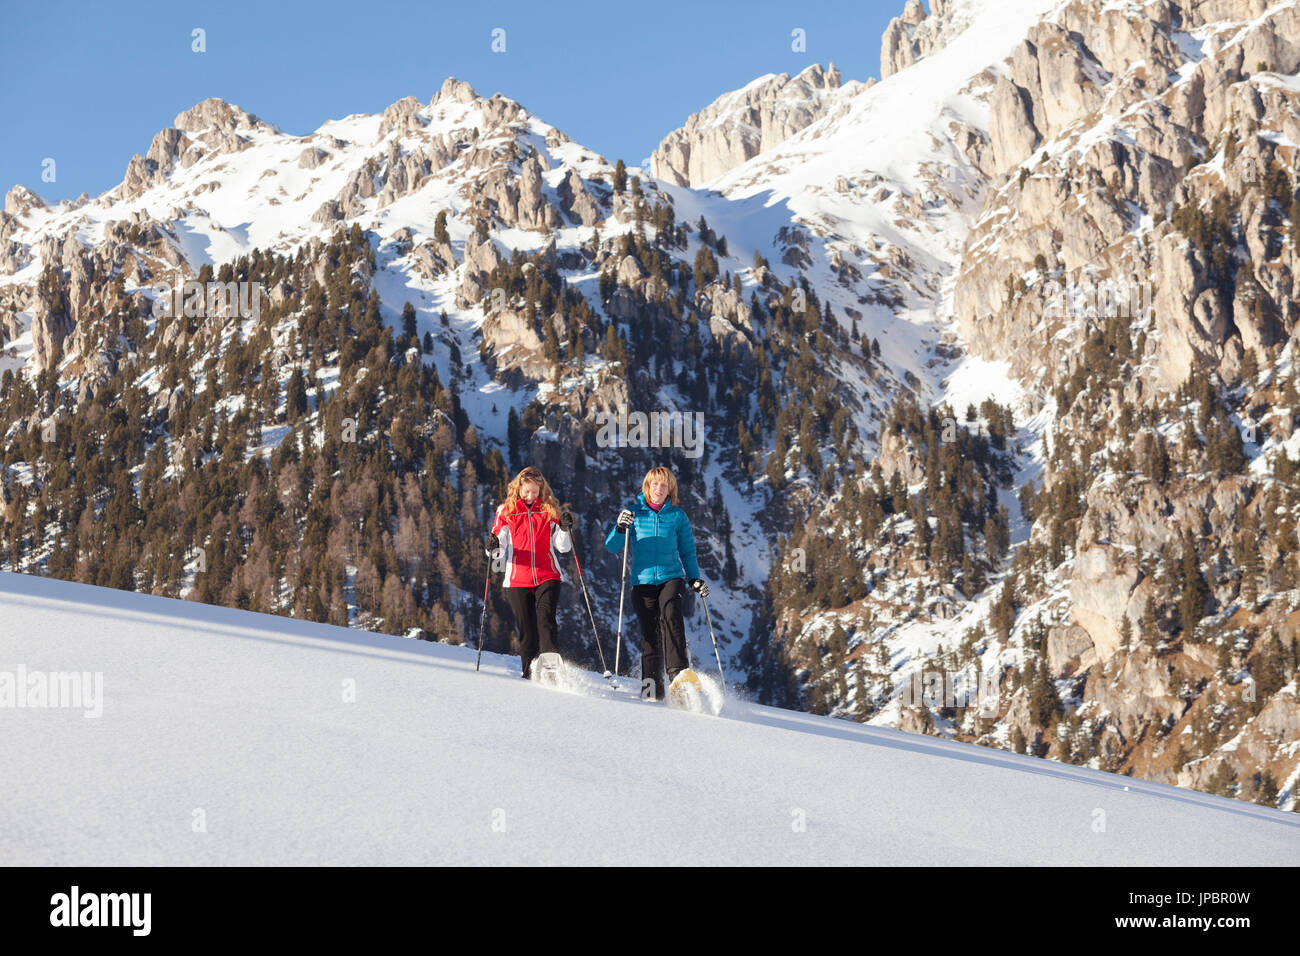 two models are walking with snowshoes on fresh snow feeling the emotion of the powder, Villnöss, Bolzano province, South Tyrol, Trentino Alto Adige, Italy, Europe - Stock Image